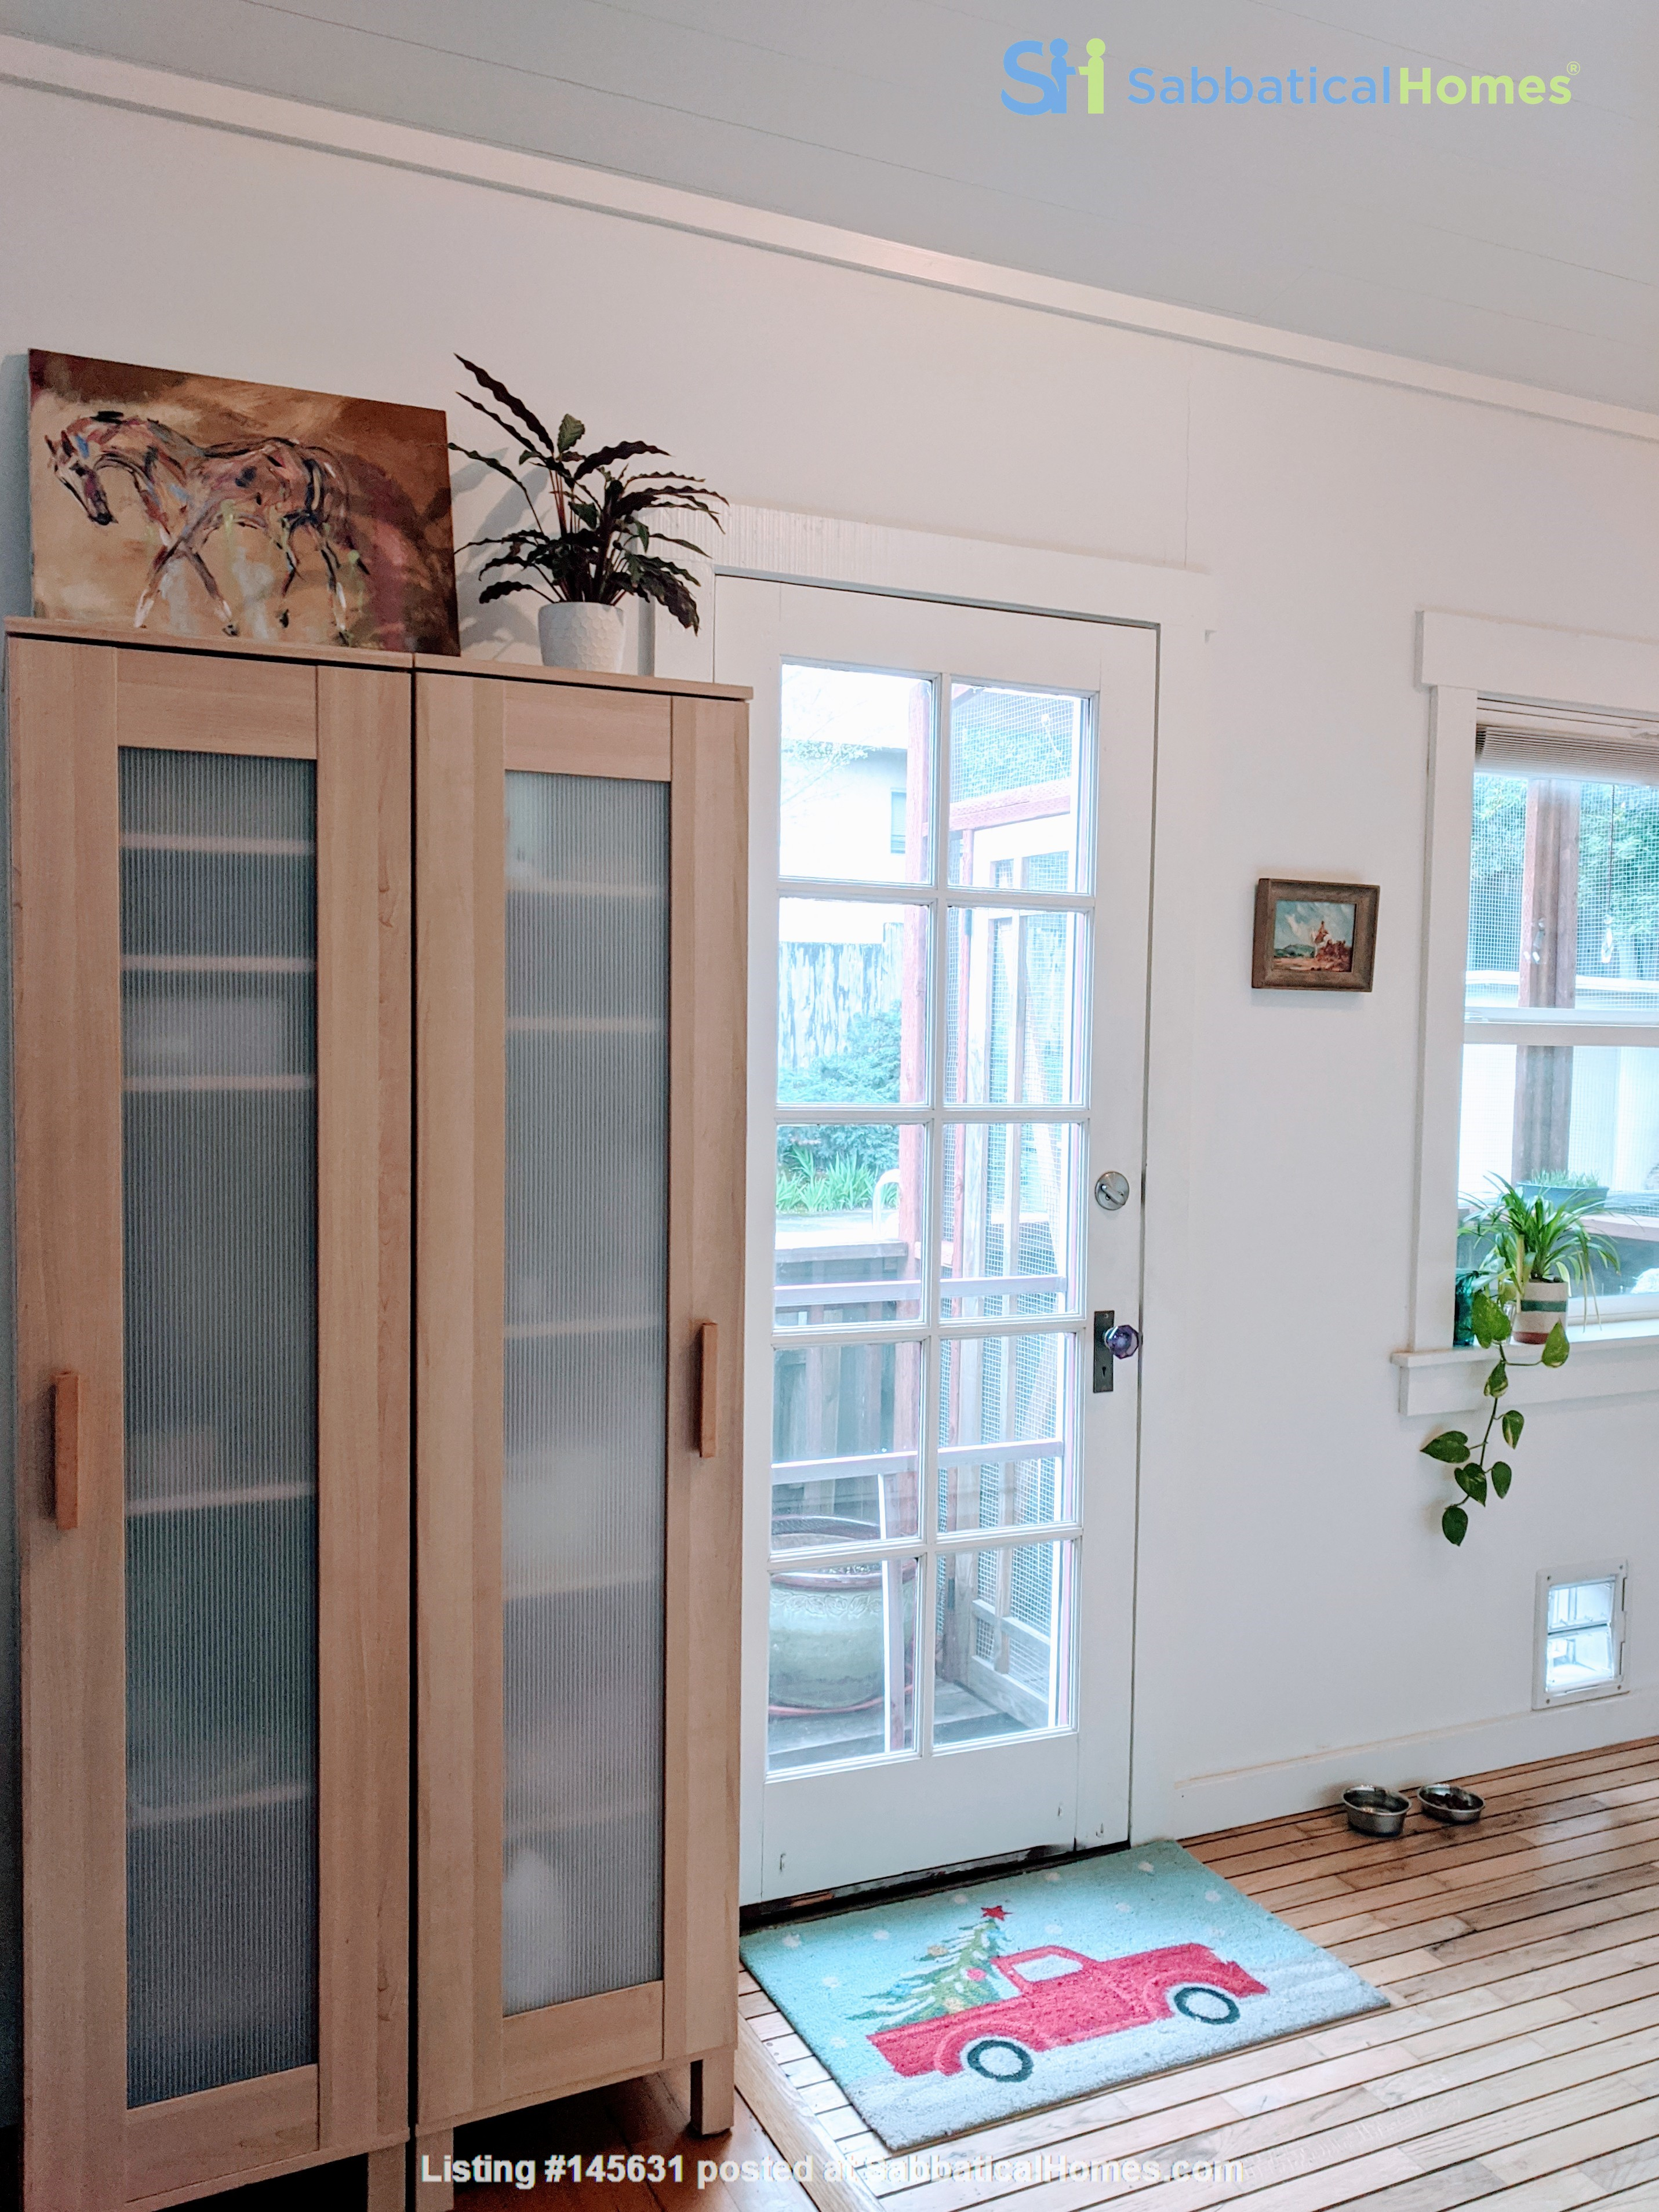 CHARMING PRIVATE COTTAGE 1 BR/1 BA + Office/studio space (720sft) Home Rental in San Rafael, California, United States 4